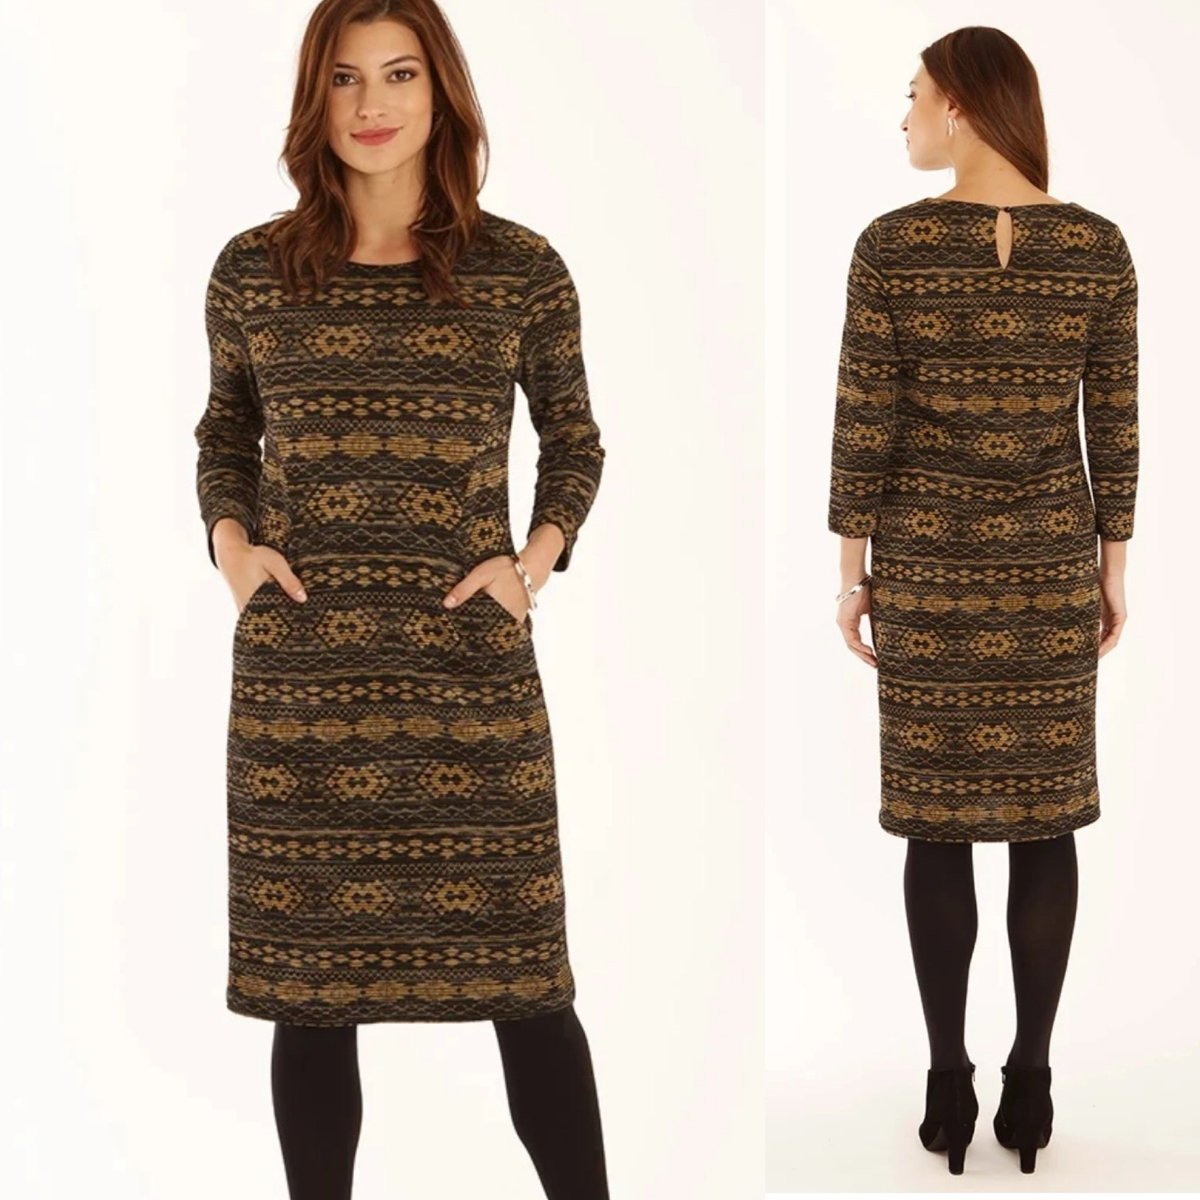 ✨ In the #Sedici #Sale, it was £76 now it's £45 ✨   So sophisticated in #jacquard knit, this gorgeous #Aztec print #dress is an eye catcher.  It is lined and even has pockets on the front 🤩  👩‍💻   #Seaford #Sussex #ShopLocal #Pomodoro #dresswithpockets